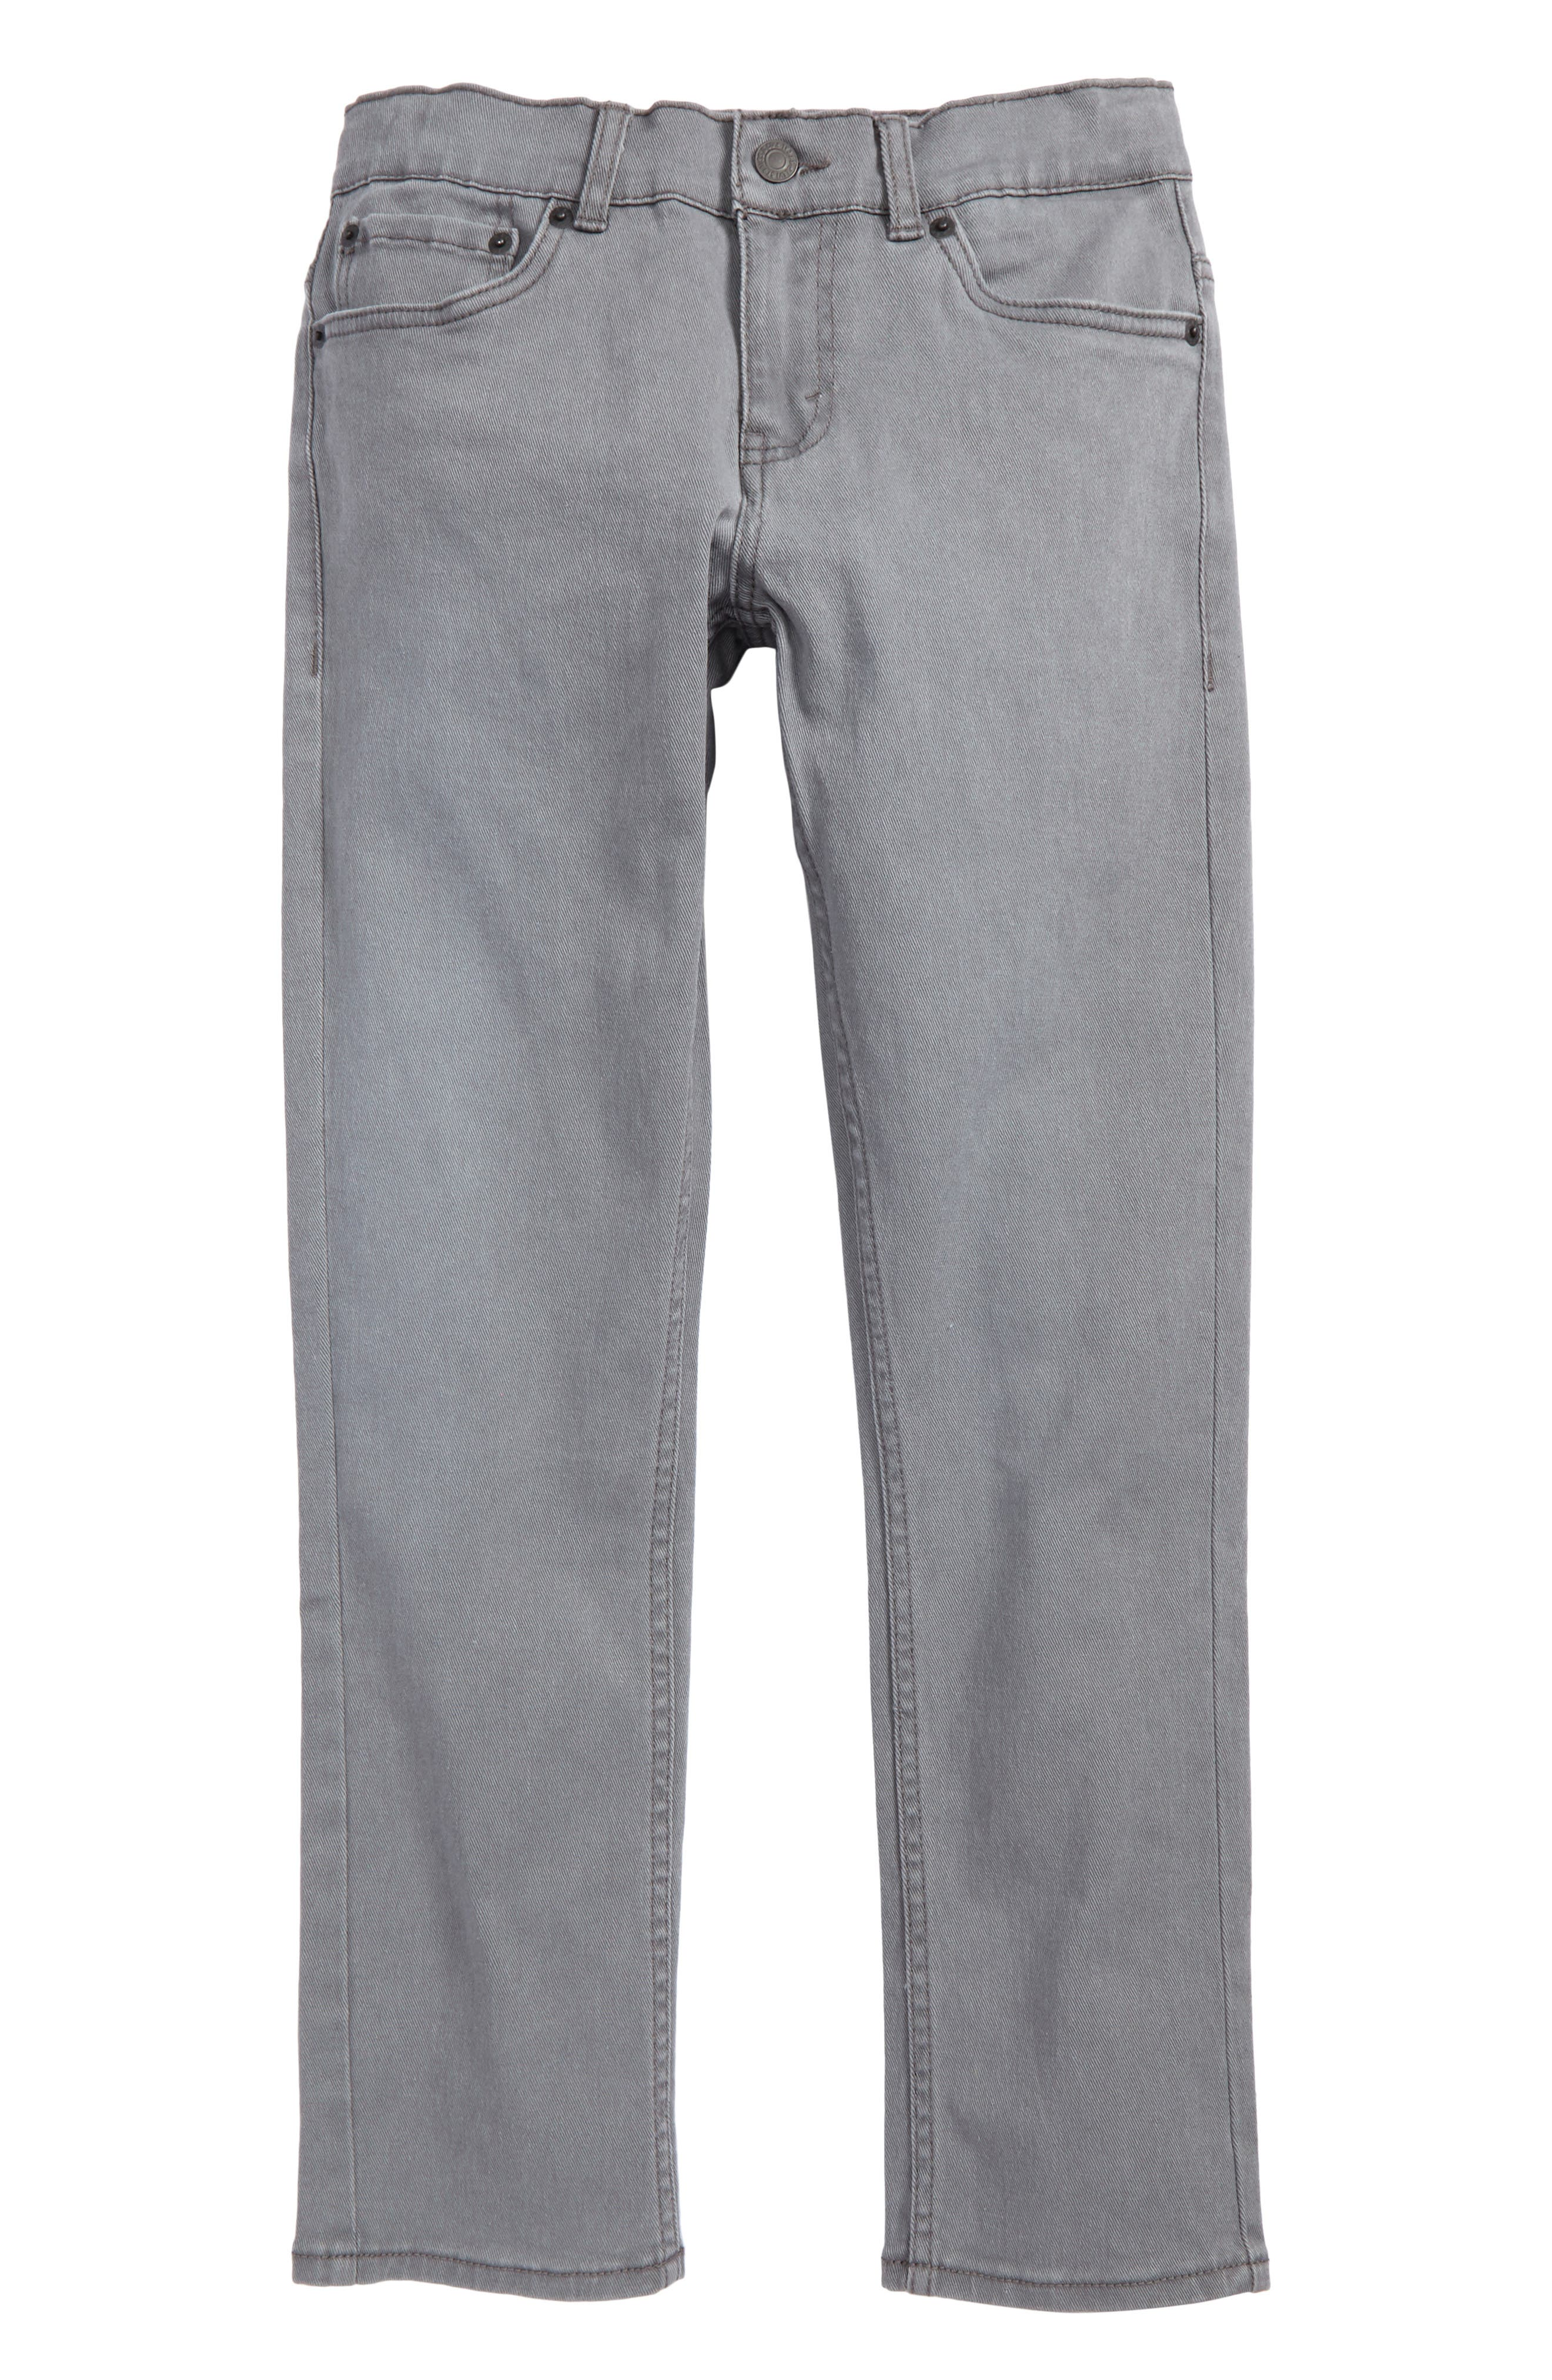 511 Slim Fit Jeans,                             Main thumbnail 1, color,                             Smoked Pearl